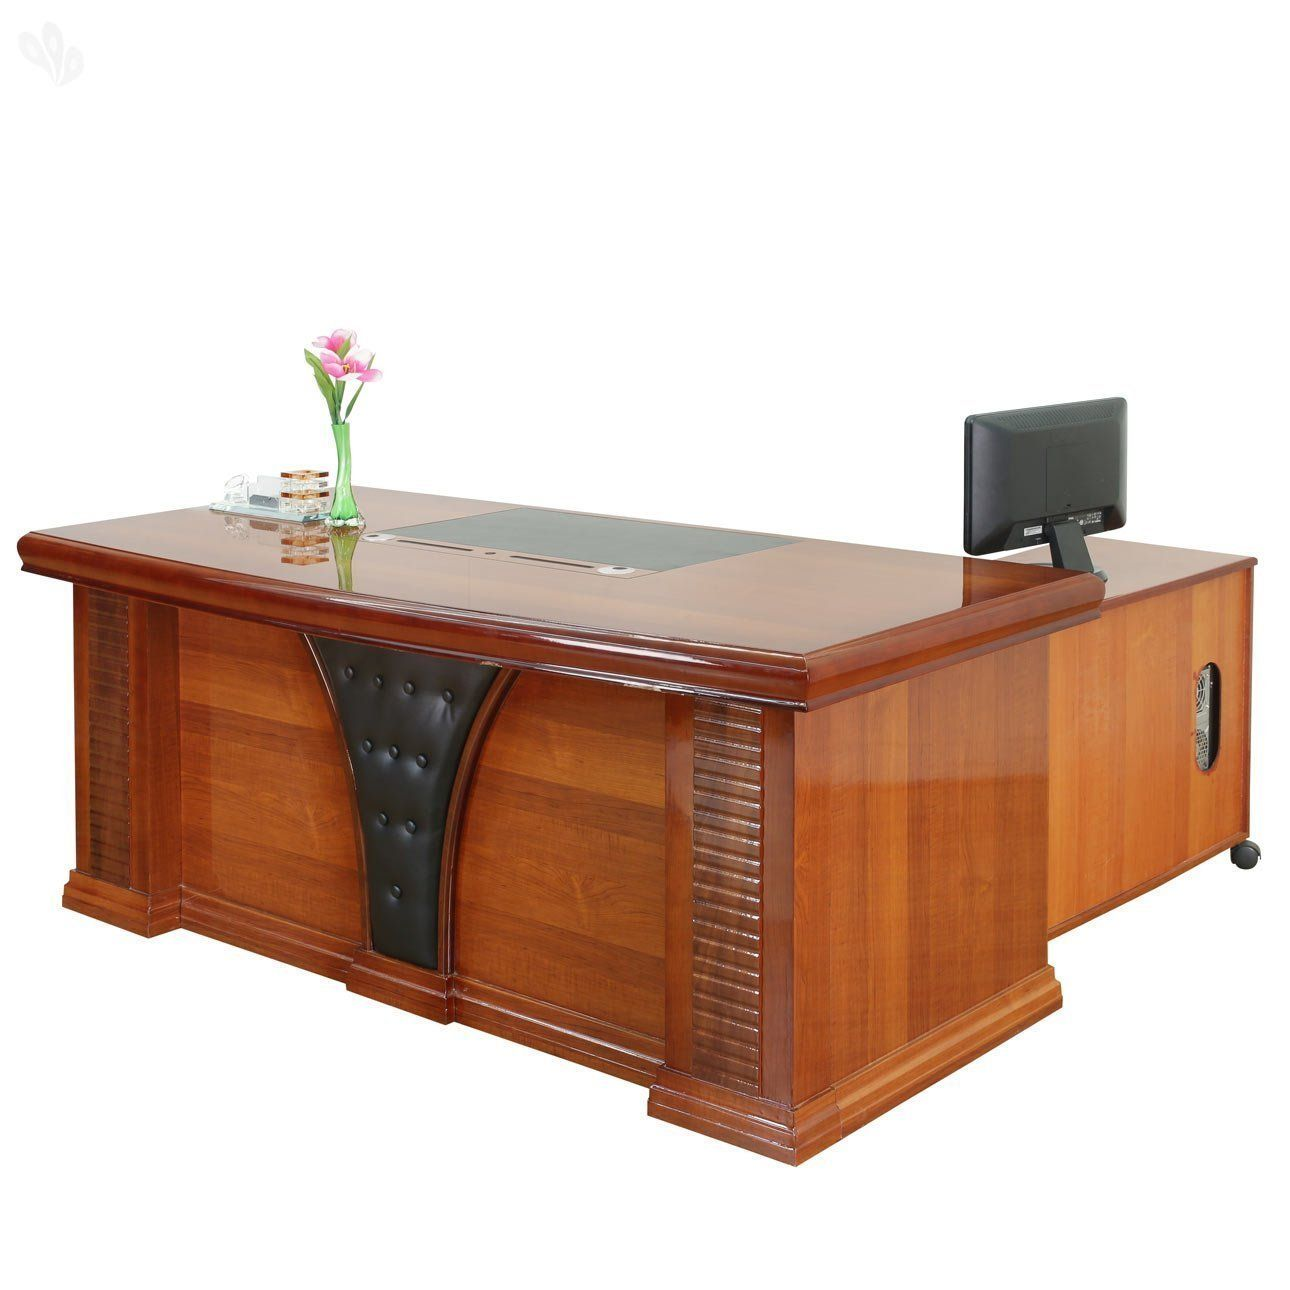 Furniture - Insignia Boss Table (Rosewood)